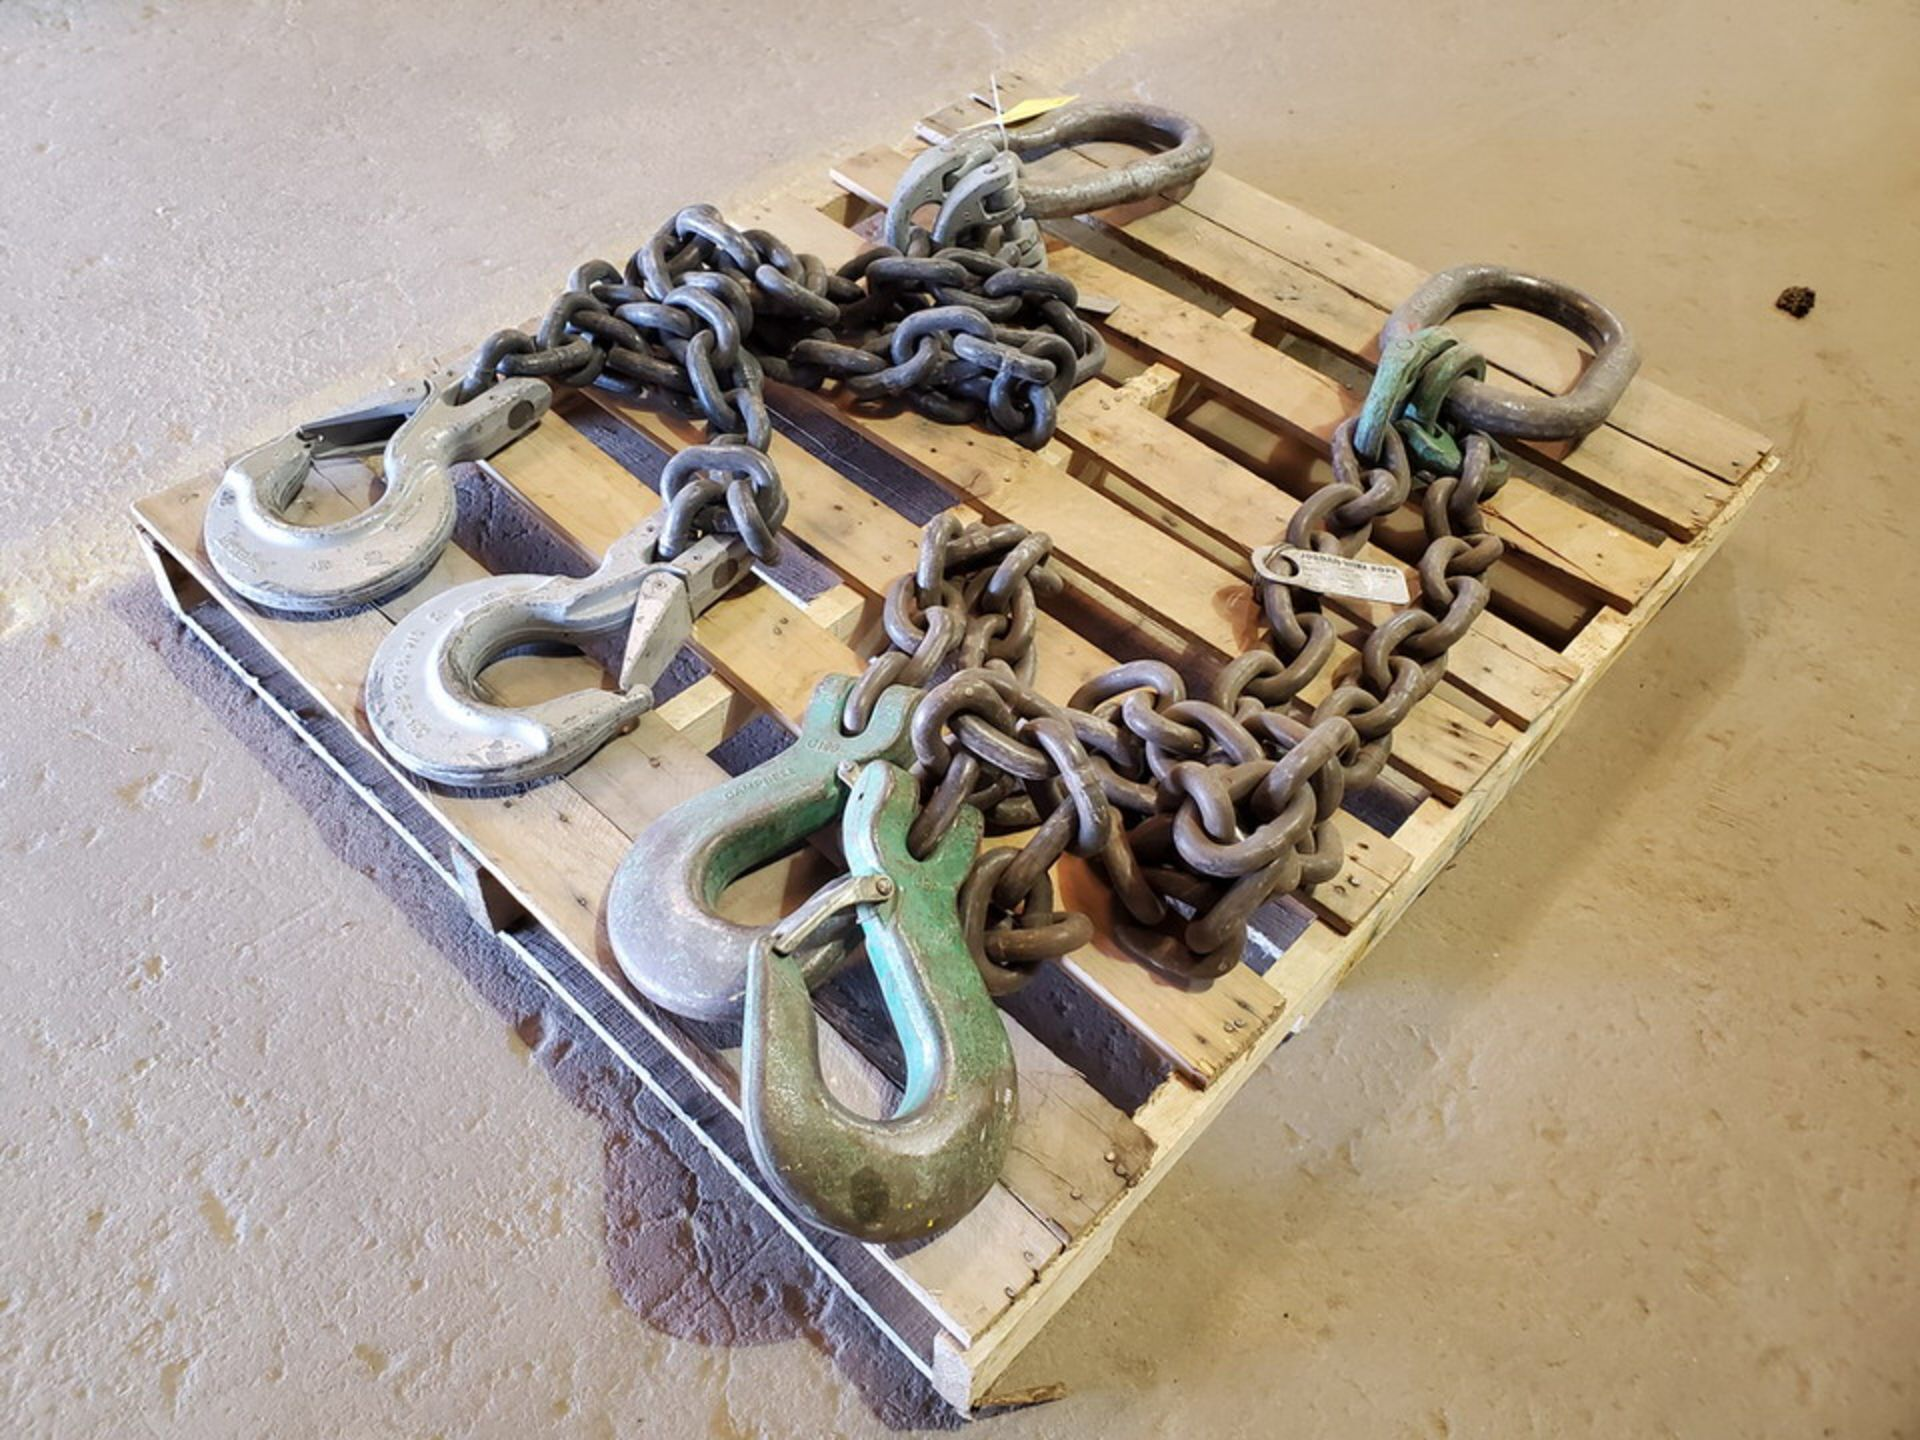 Hvy Duty Lifting Chains - Image 2 of 7